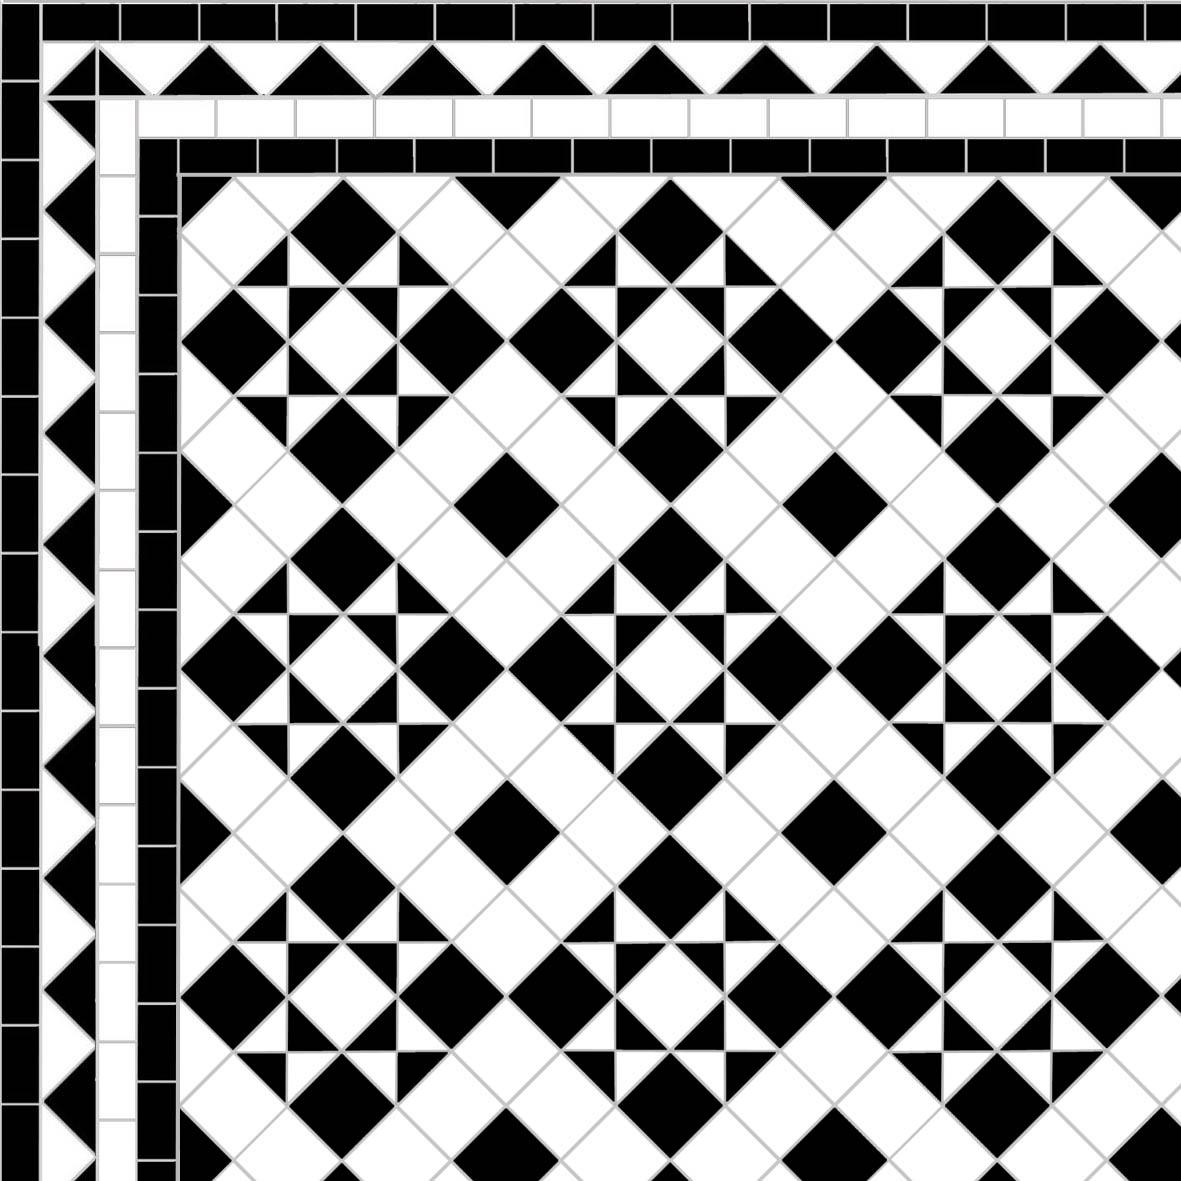 Box & Star - Dog's Tooth Border